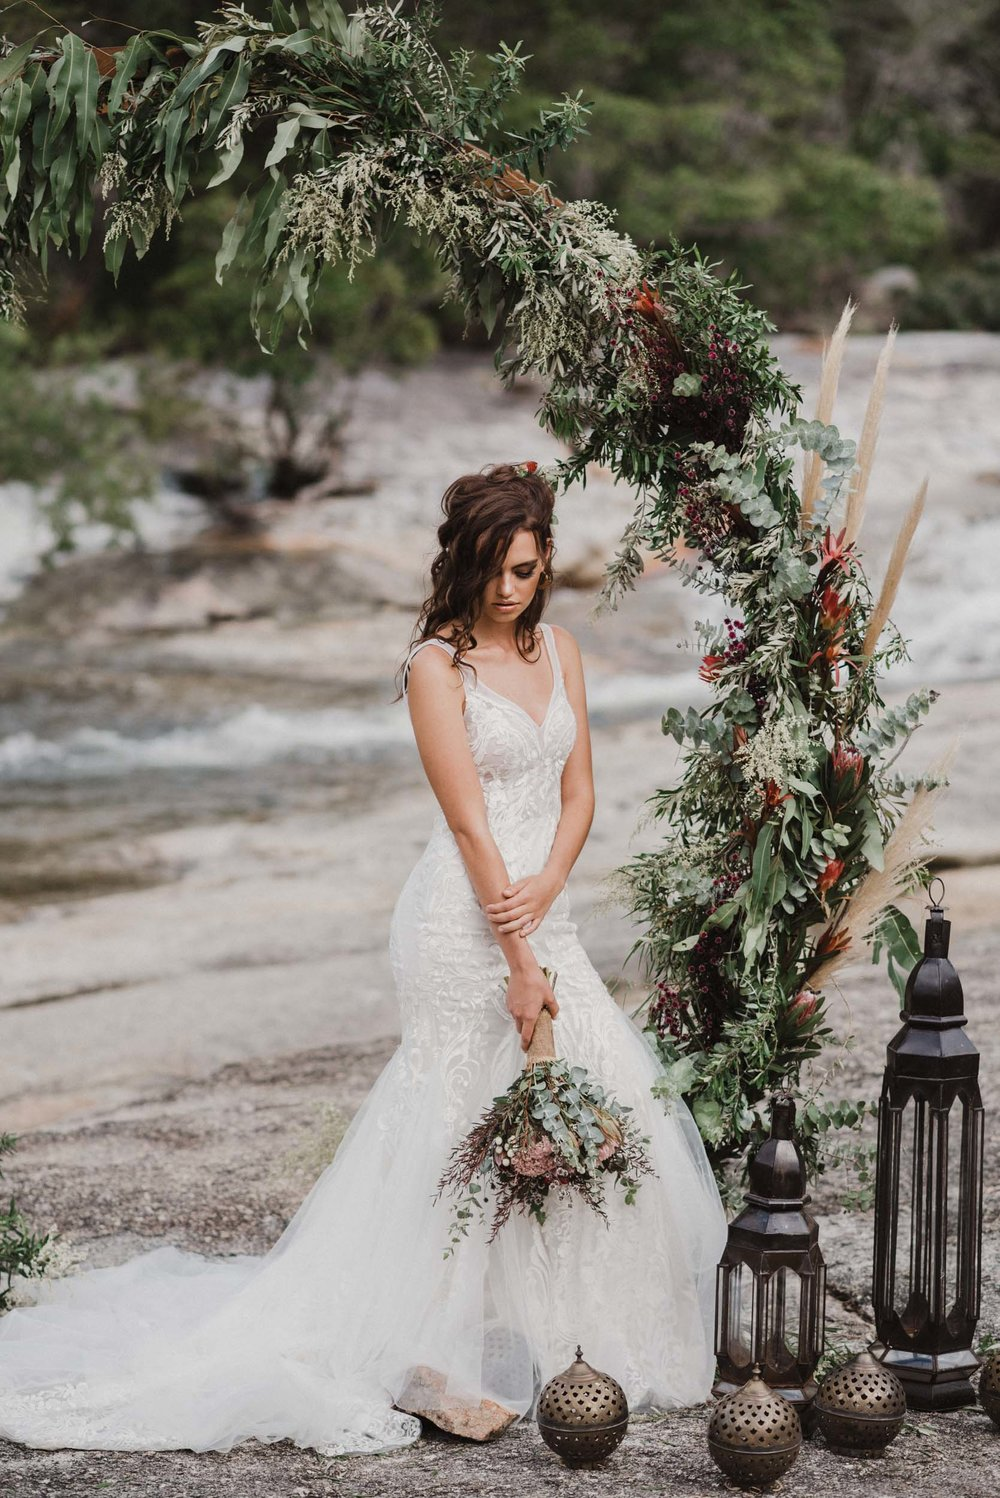 The Raw Photographer - Cairns Wedding Photographer - Brides Styled Shoot - Dress Jonovia Bridal - Hair Makeup Ideas-20.jpg